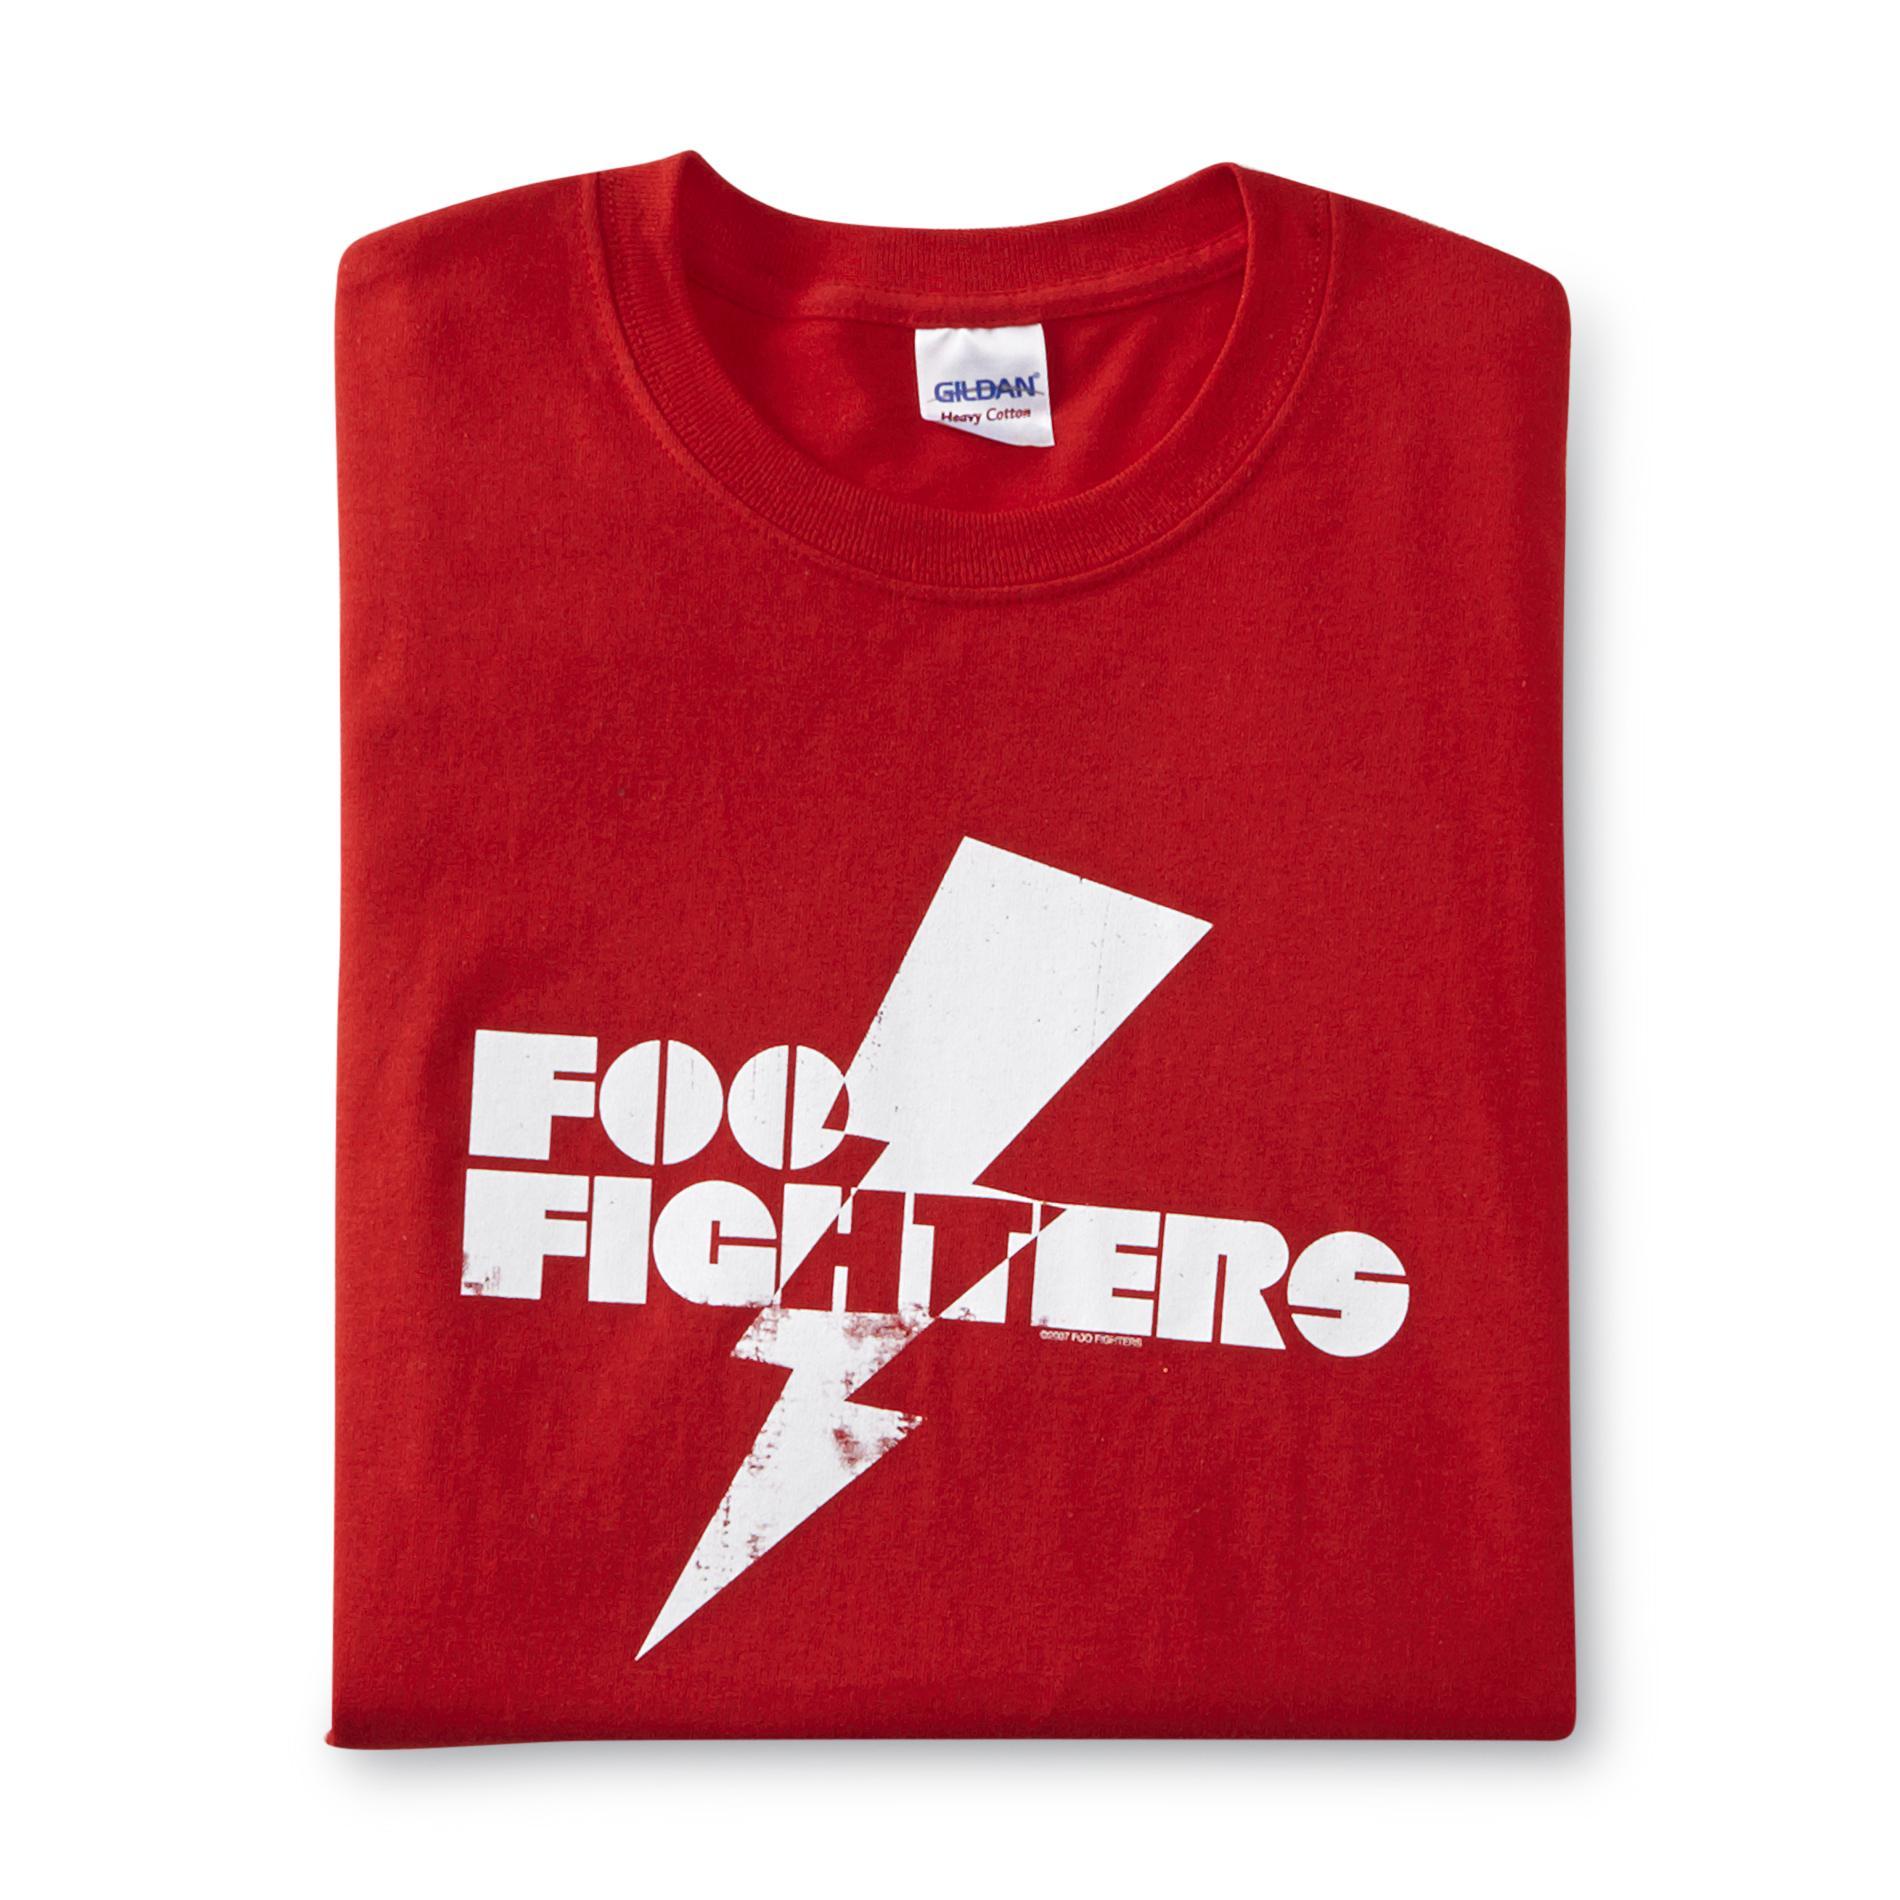 Young Men's Graphic T-Shirt - Foo Fighters